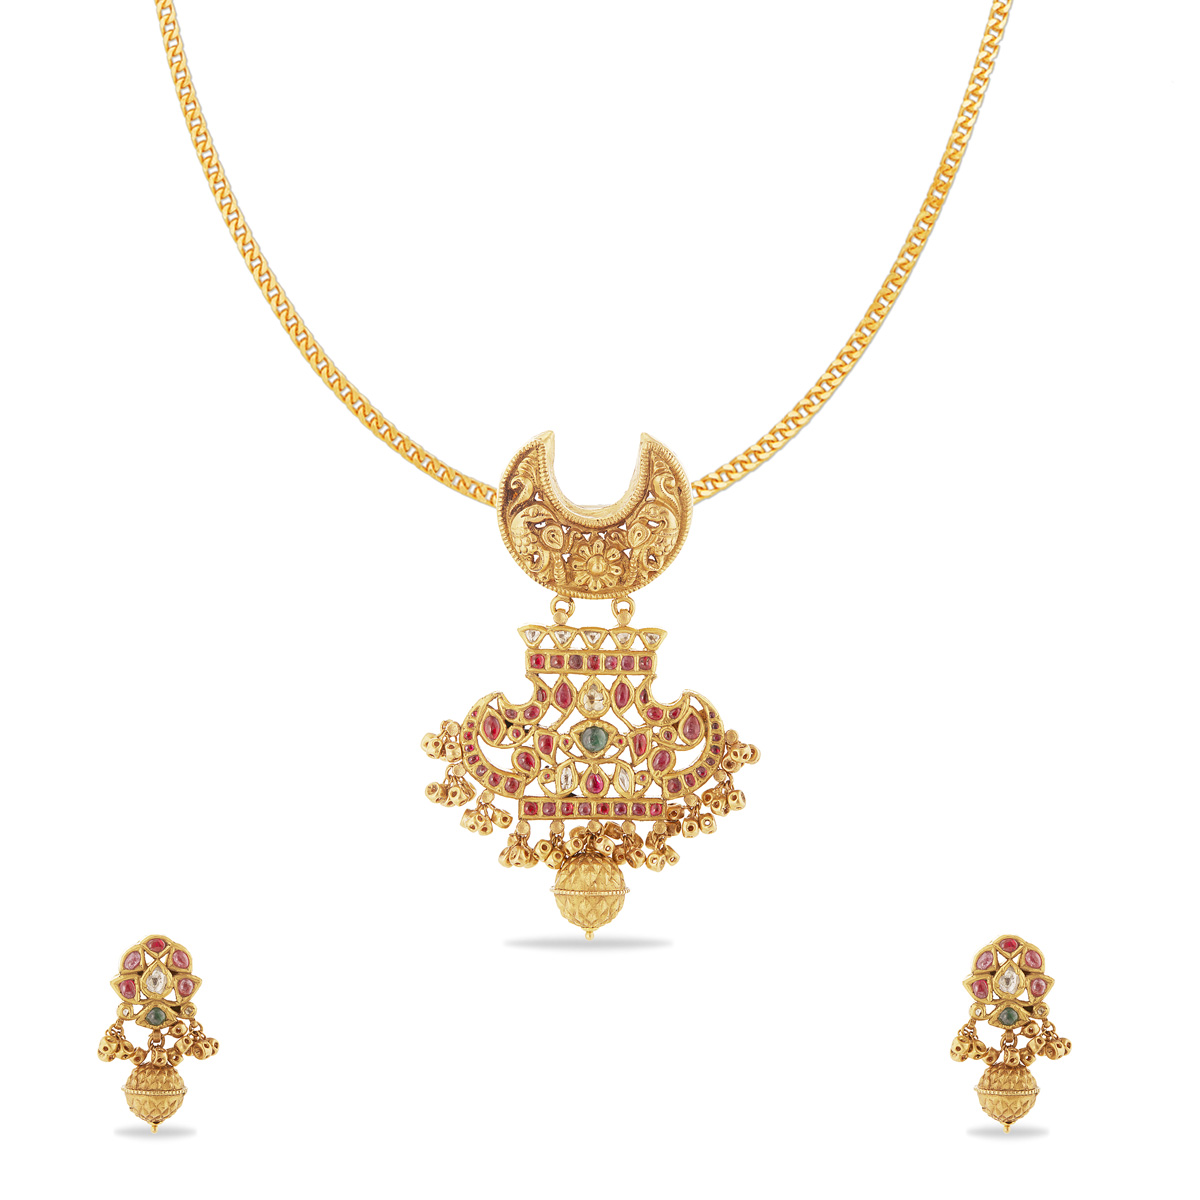 Queen style pendent